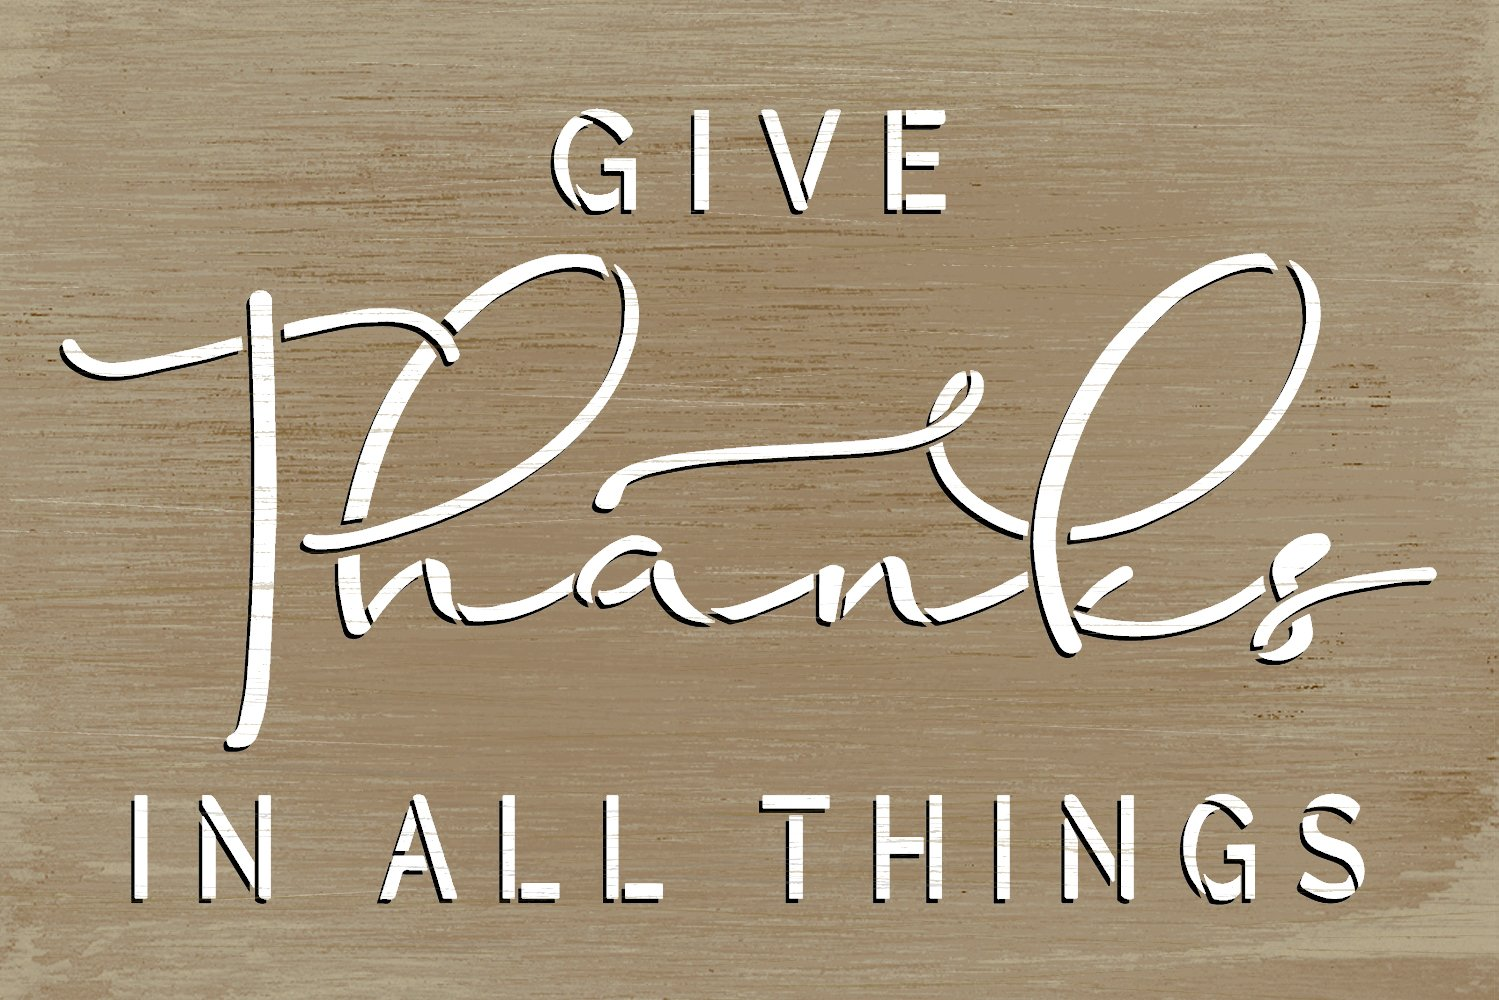 Give Thanks in All Things Stencil by StudioR12 | Craft DIY Thanksgiving Fall Home Decor | Paint Autumn Wood Sign Reusable Mylar Template | Select Size